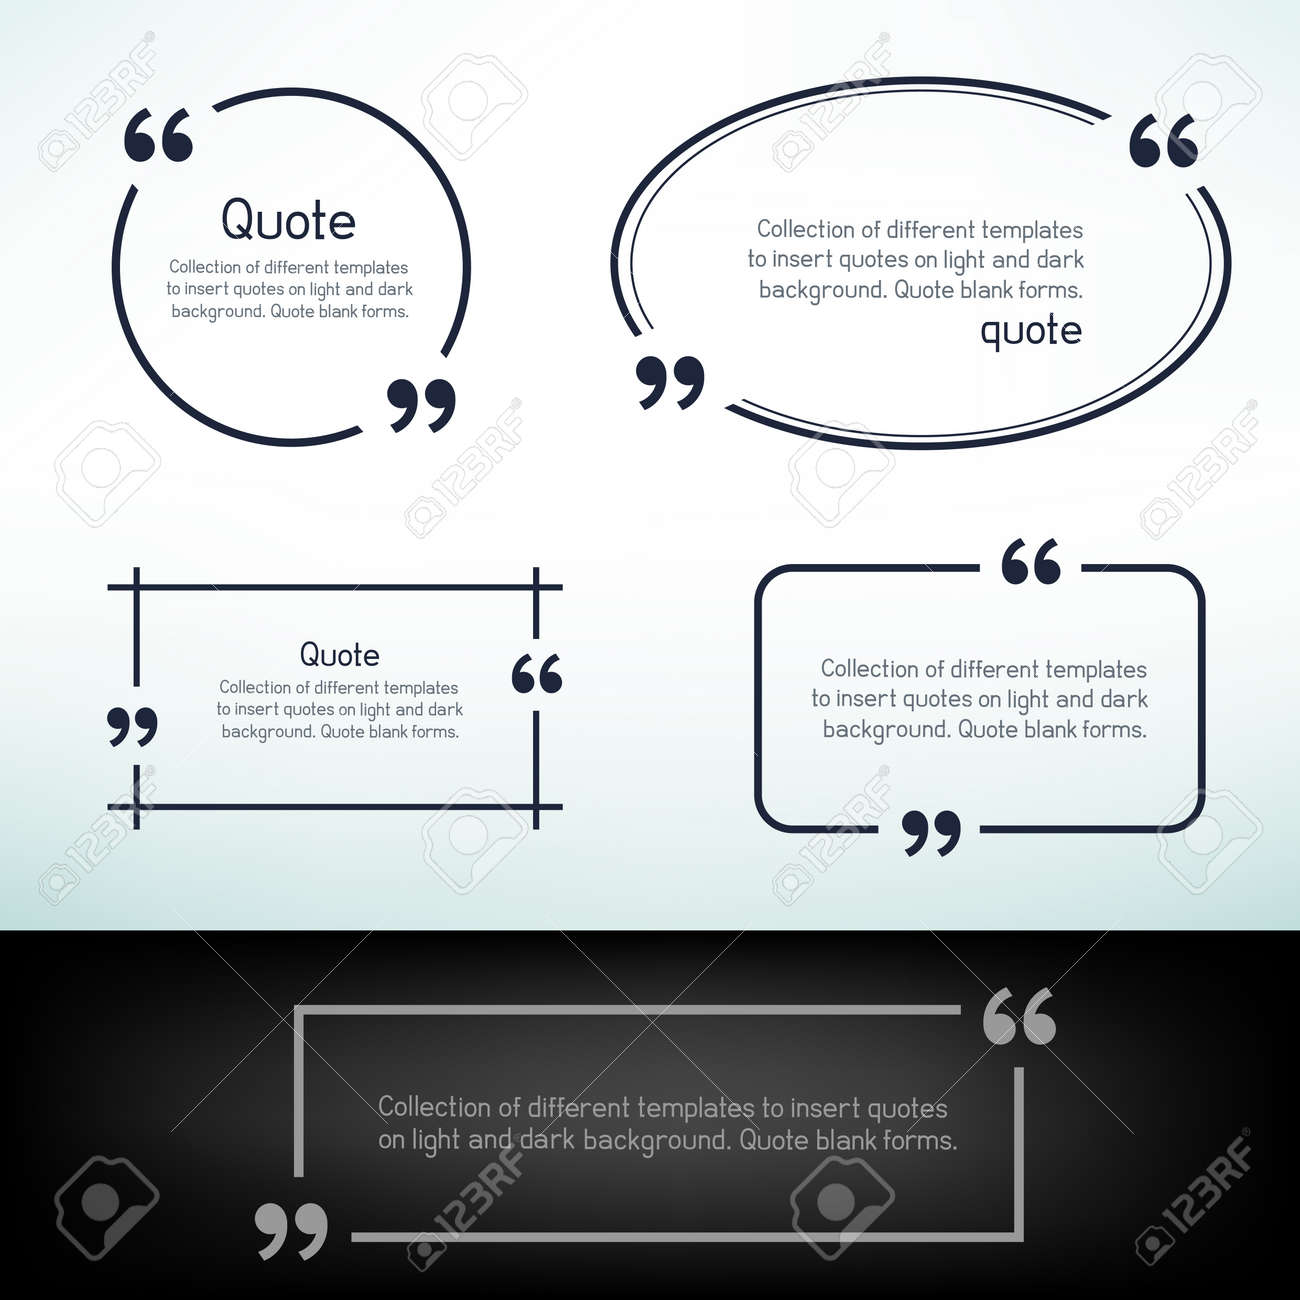 simple quote templates round square oval rectangular quotes simple quote templates round square oval rectangular quotes forms on light and dark background